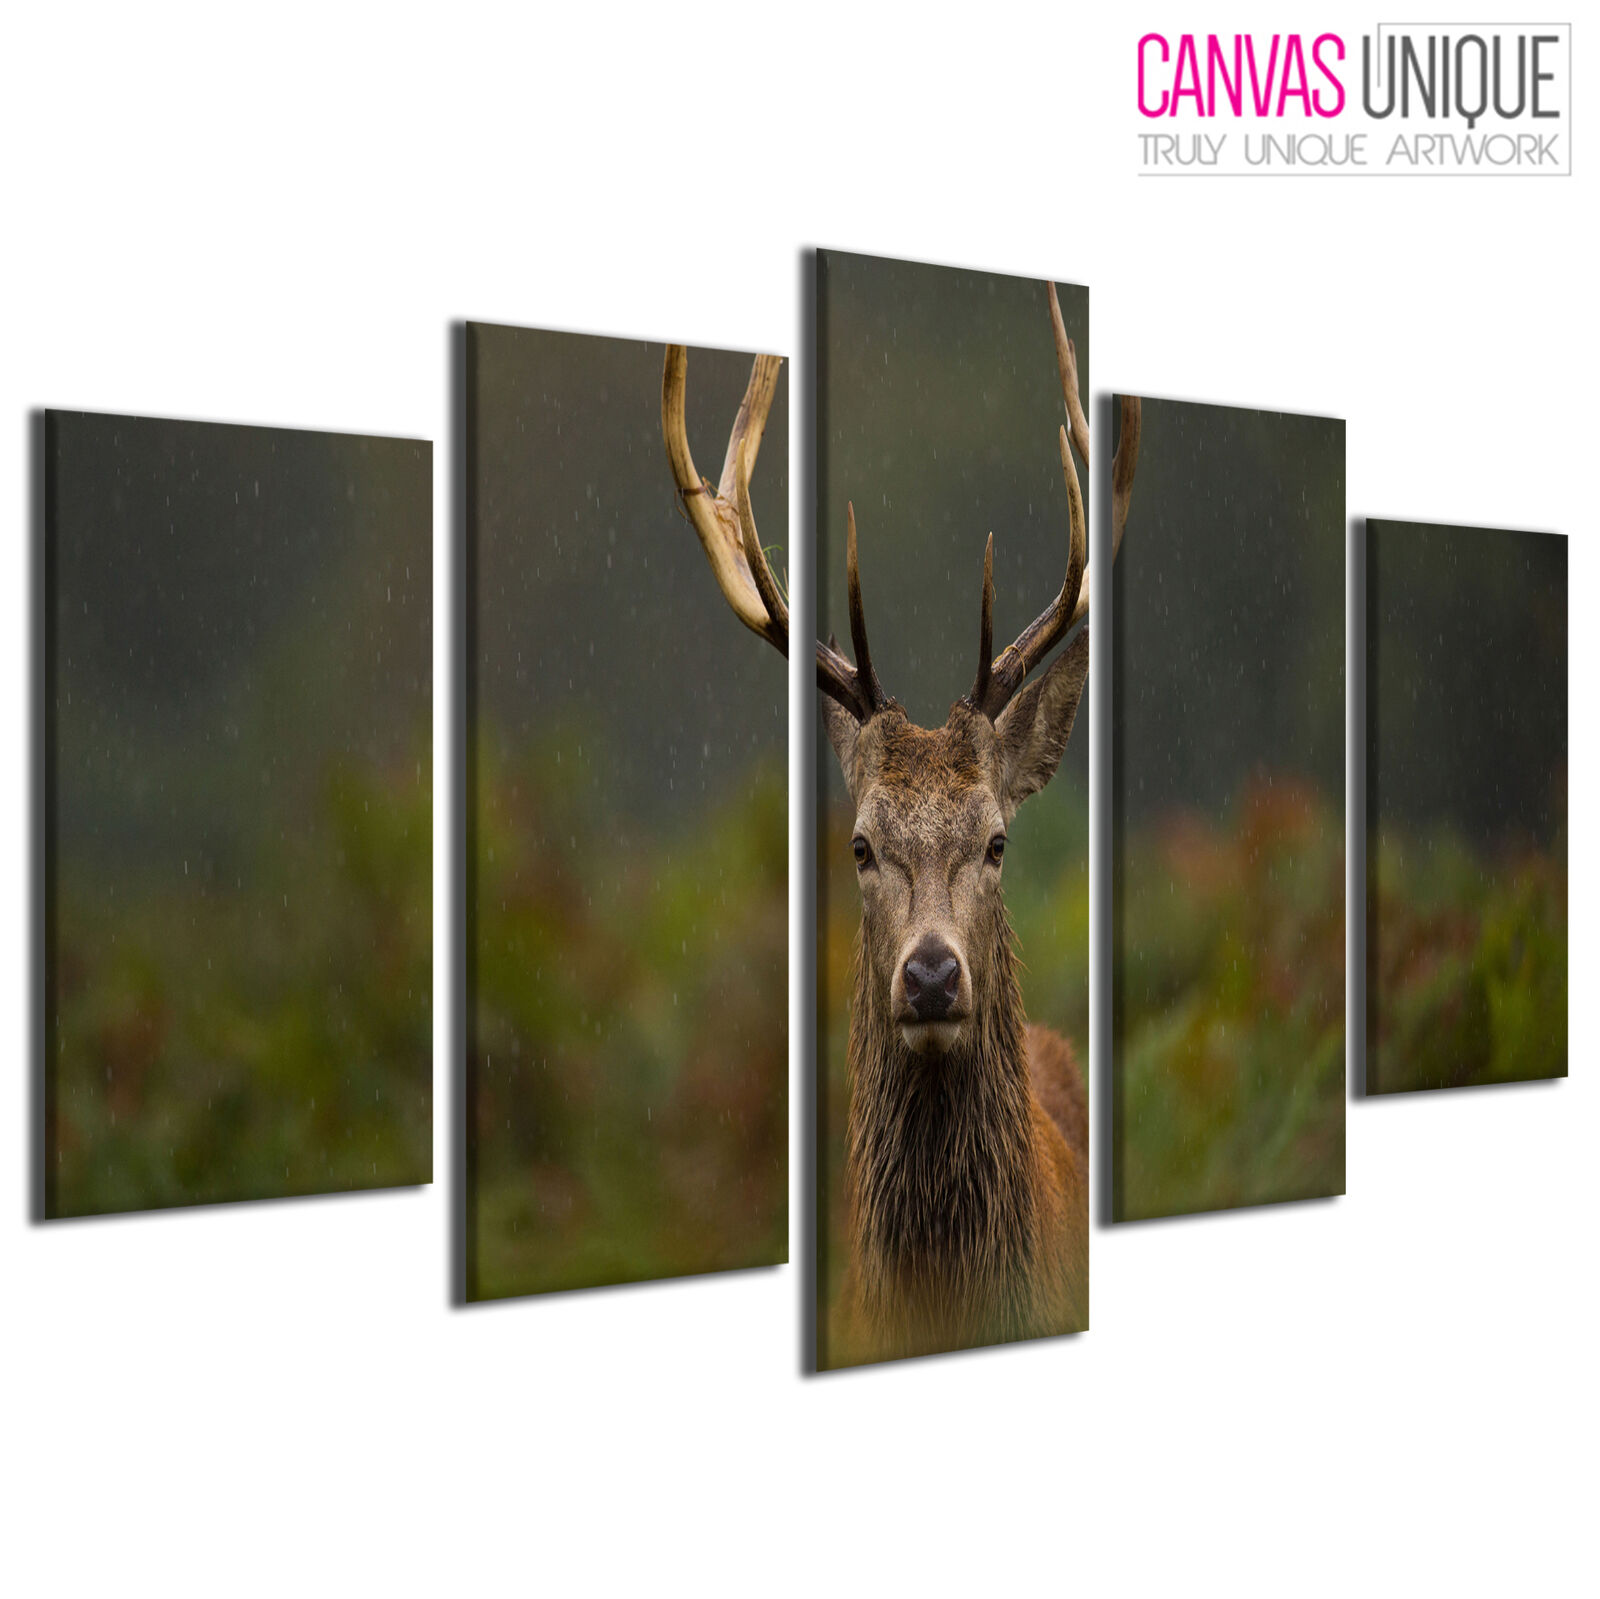 5PA521 Stag Deer Grassland Raining Animal Multi Frame Canvas Wall Art Print